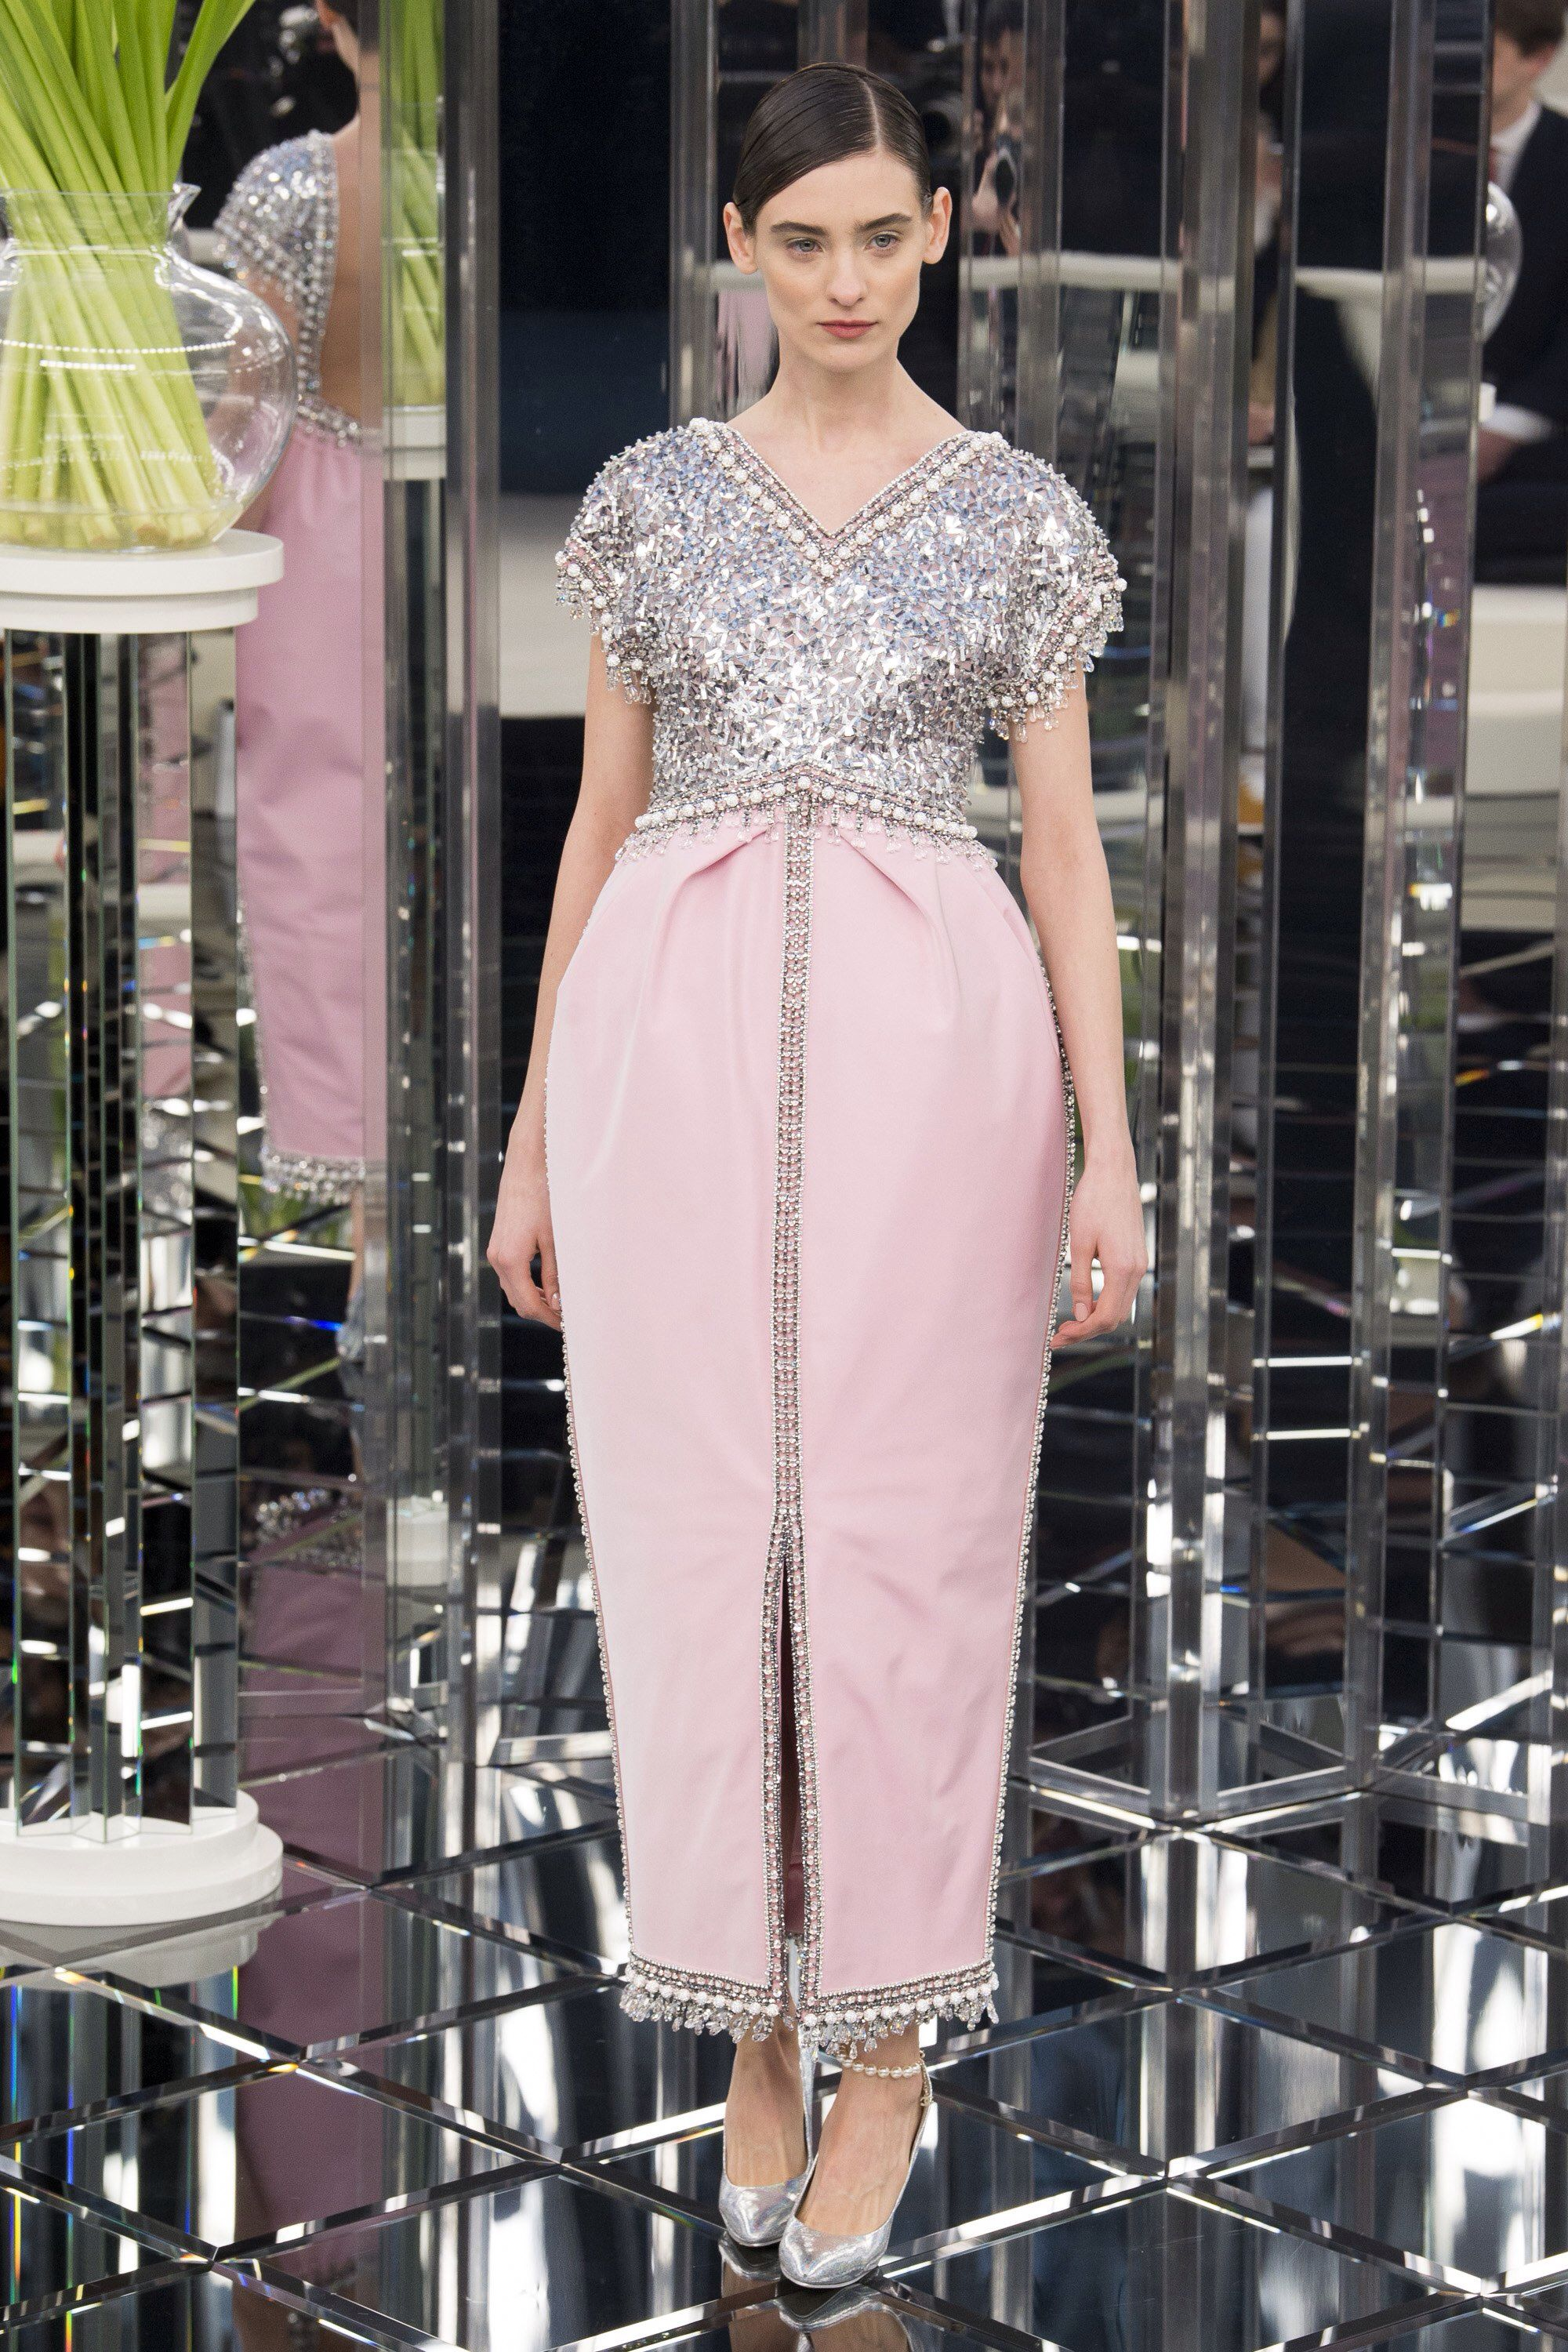 Chanel Haute Couture Spring Summer 2017 Collection Chanel Spring 2017 4a08baee47cf